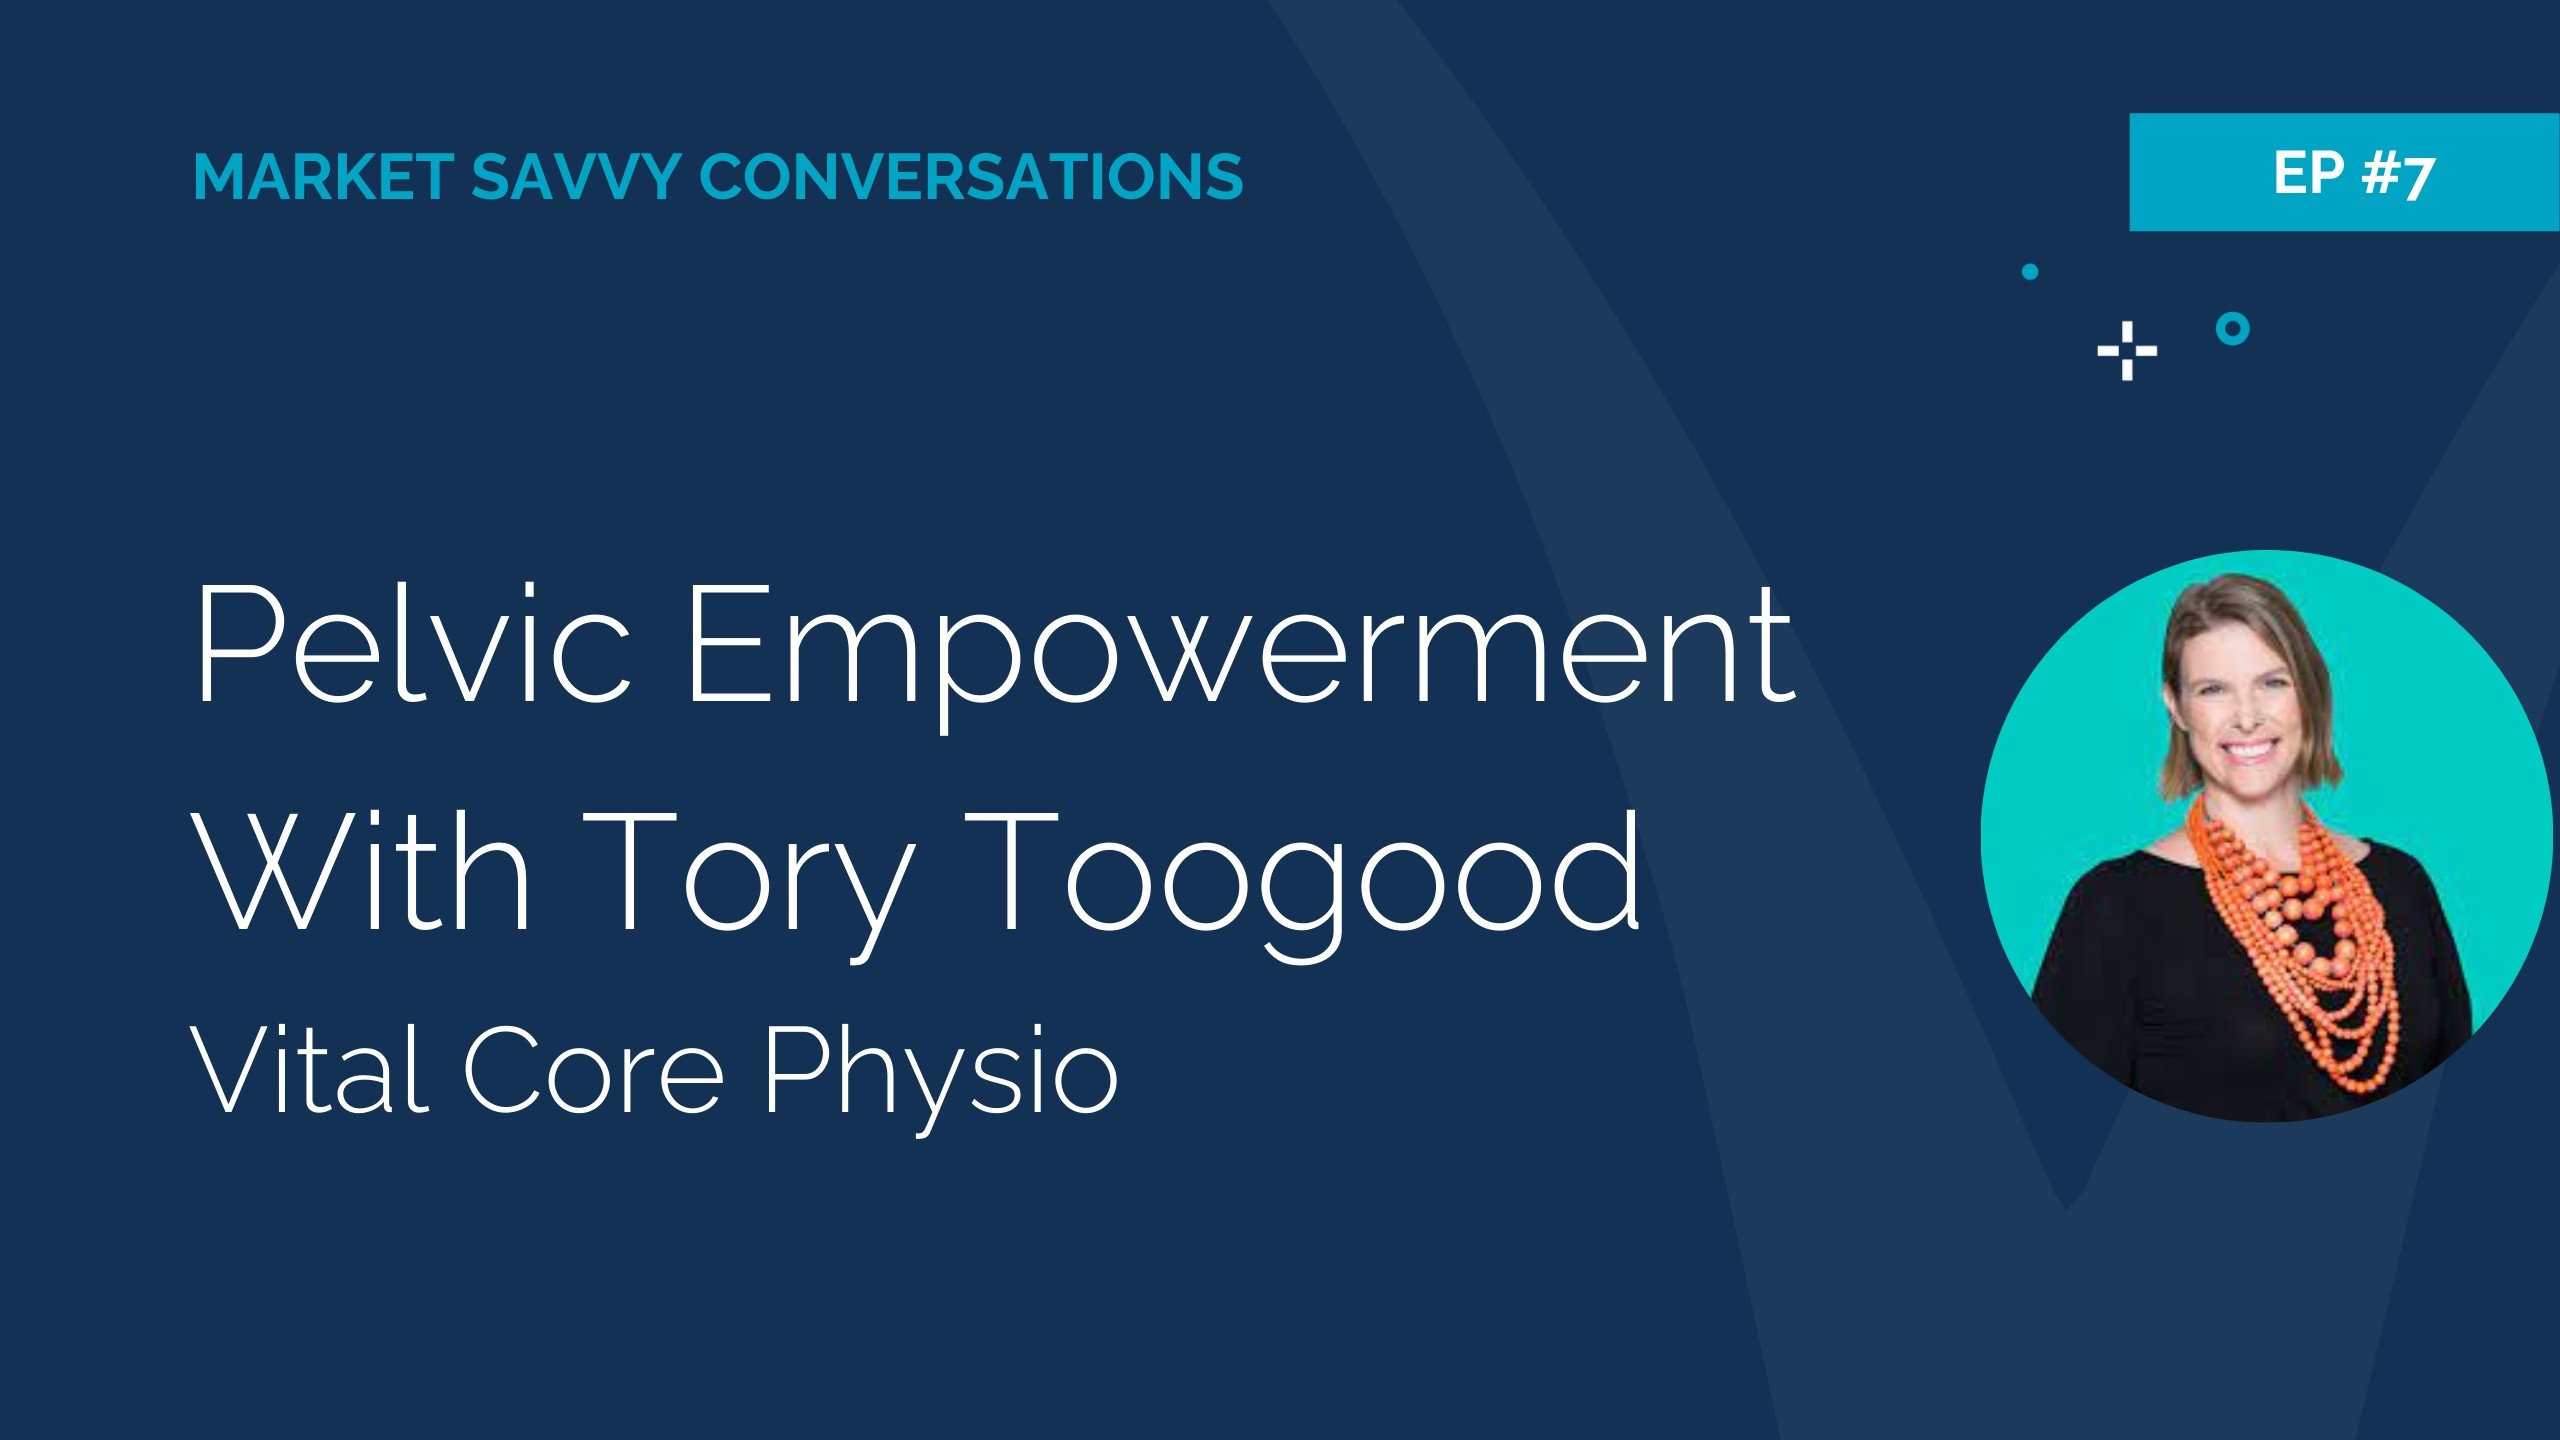 Megan Walker from Market Savvy Interviews Tory Toogood from Vital Core Physio re Pelvic Empowerment